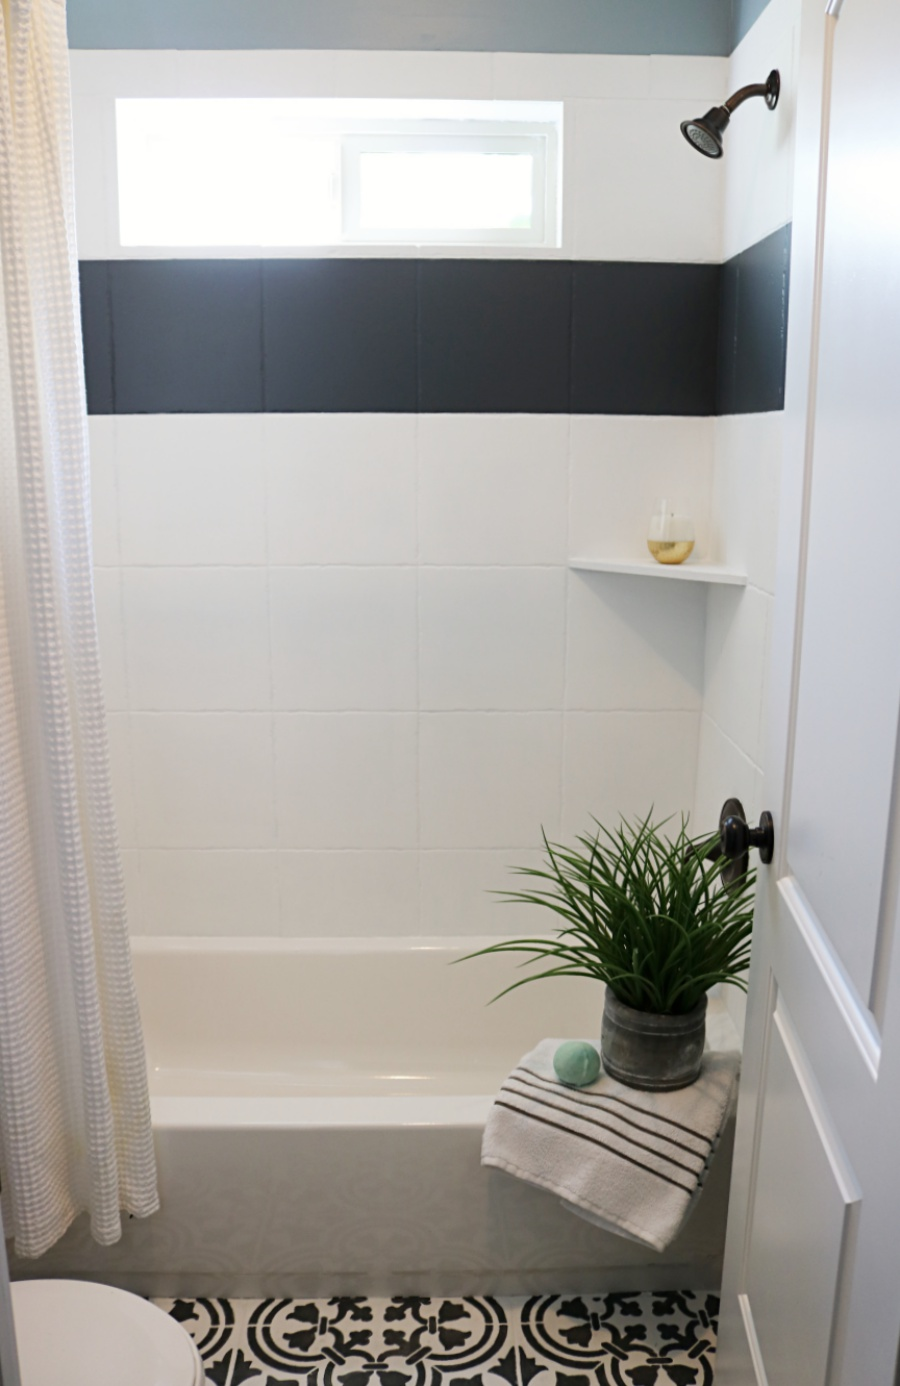 How To Paint Shower Tile  Remington Avenue. Kitchen Banana Yoshimoto. Kitchen Soap Dispensers. Teal Kitchen. Microdry Kitchen Mat. Panda Kitchen Menu. Soapstone Kitchen Sink. Sonshine Soup Kitchen. Kitchen Ceiling Exhaust Fan